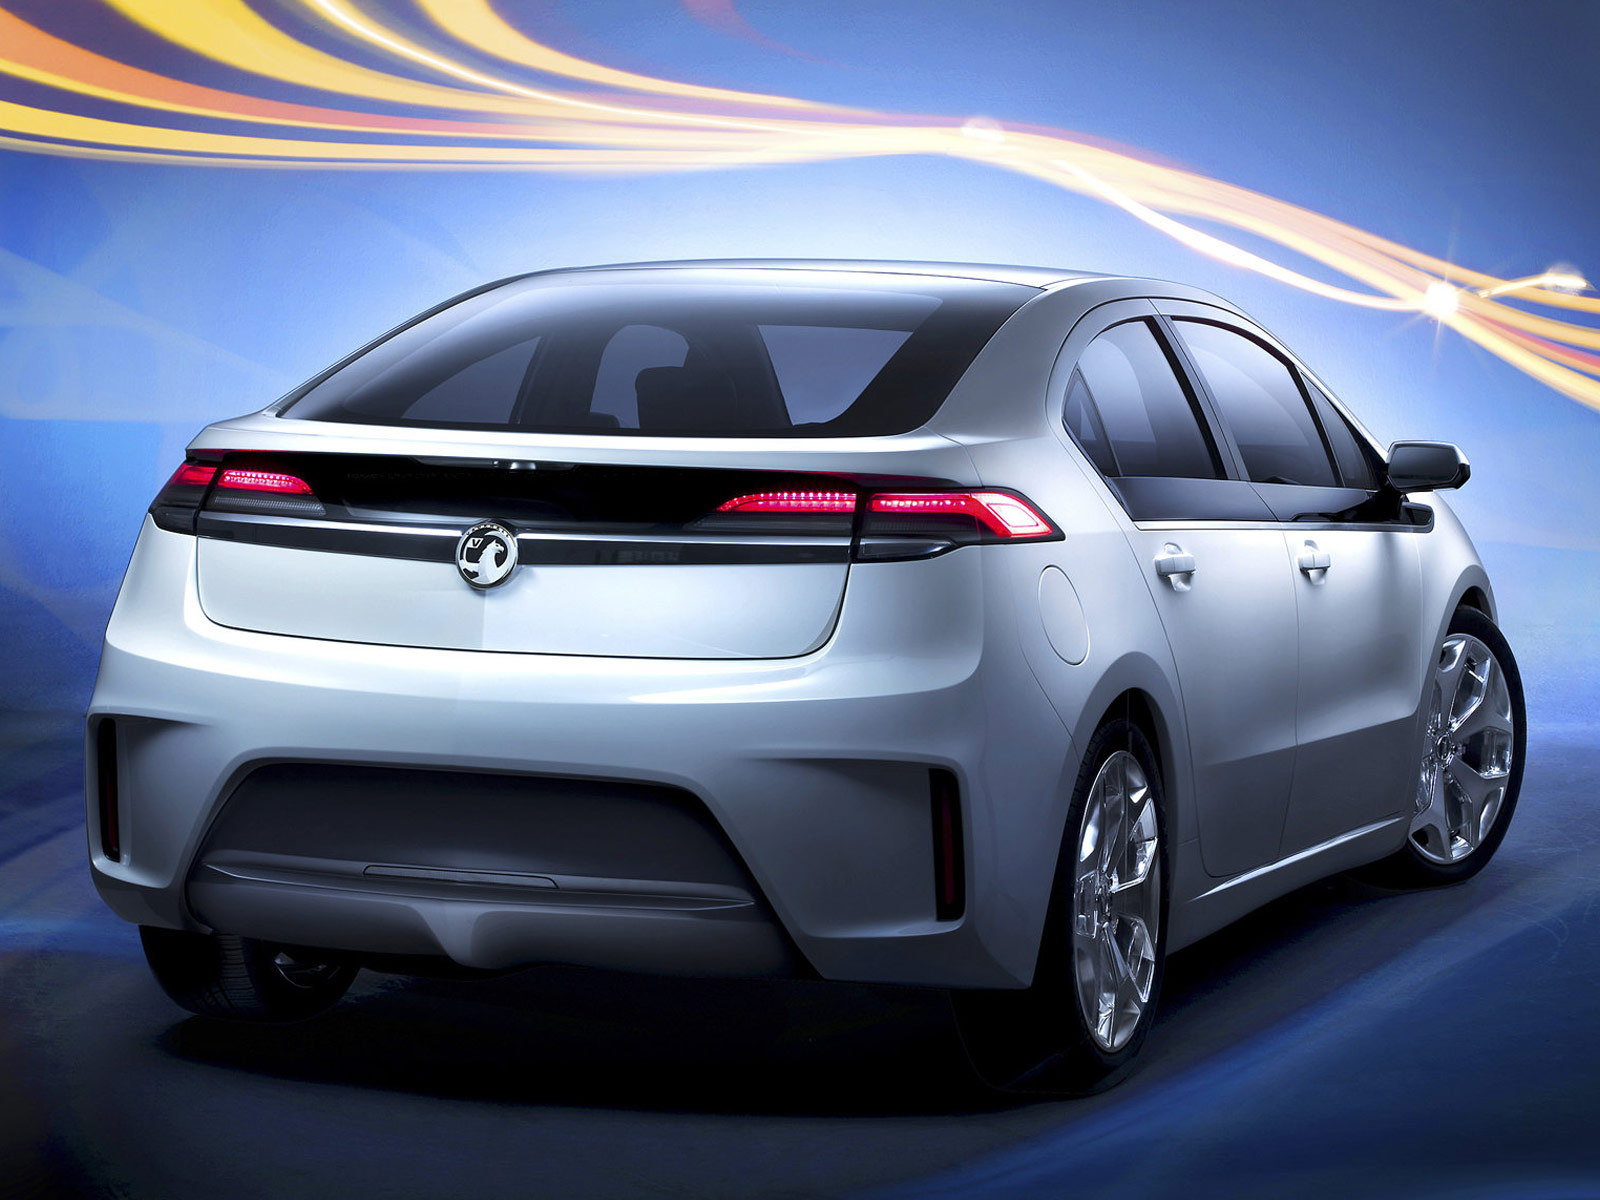 2012 Vauxhall Ampera car desktop wallpaper